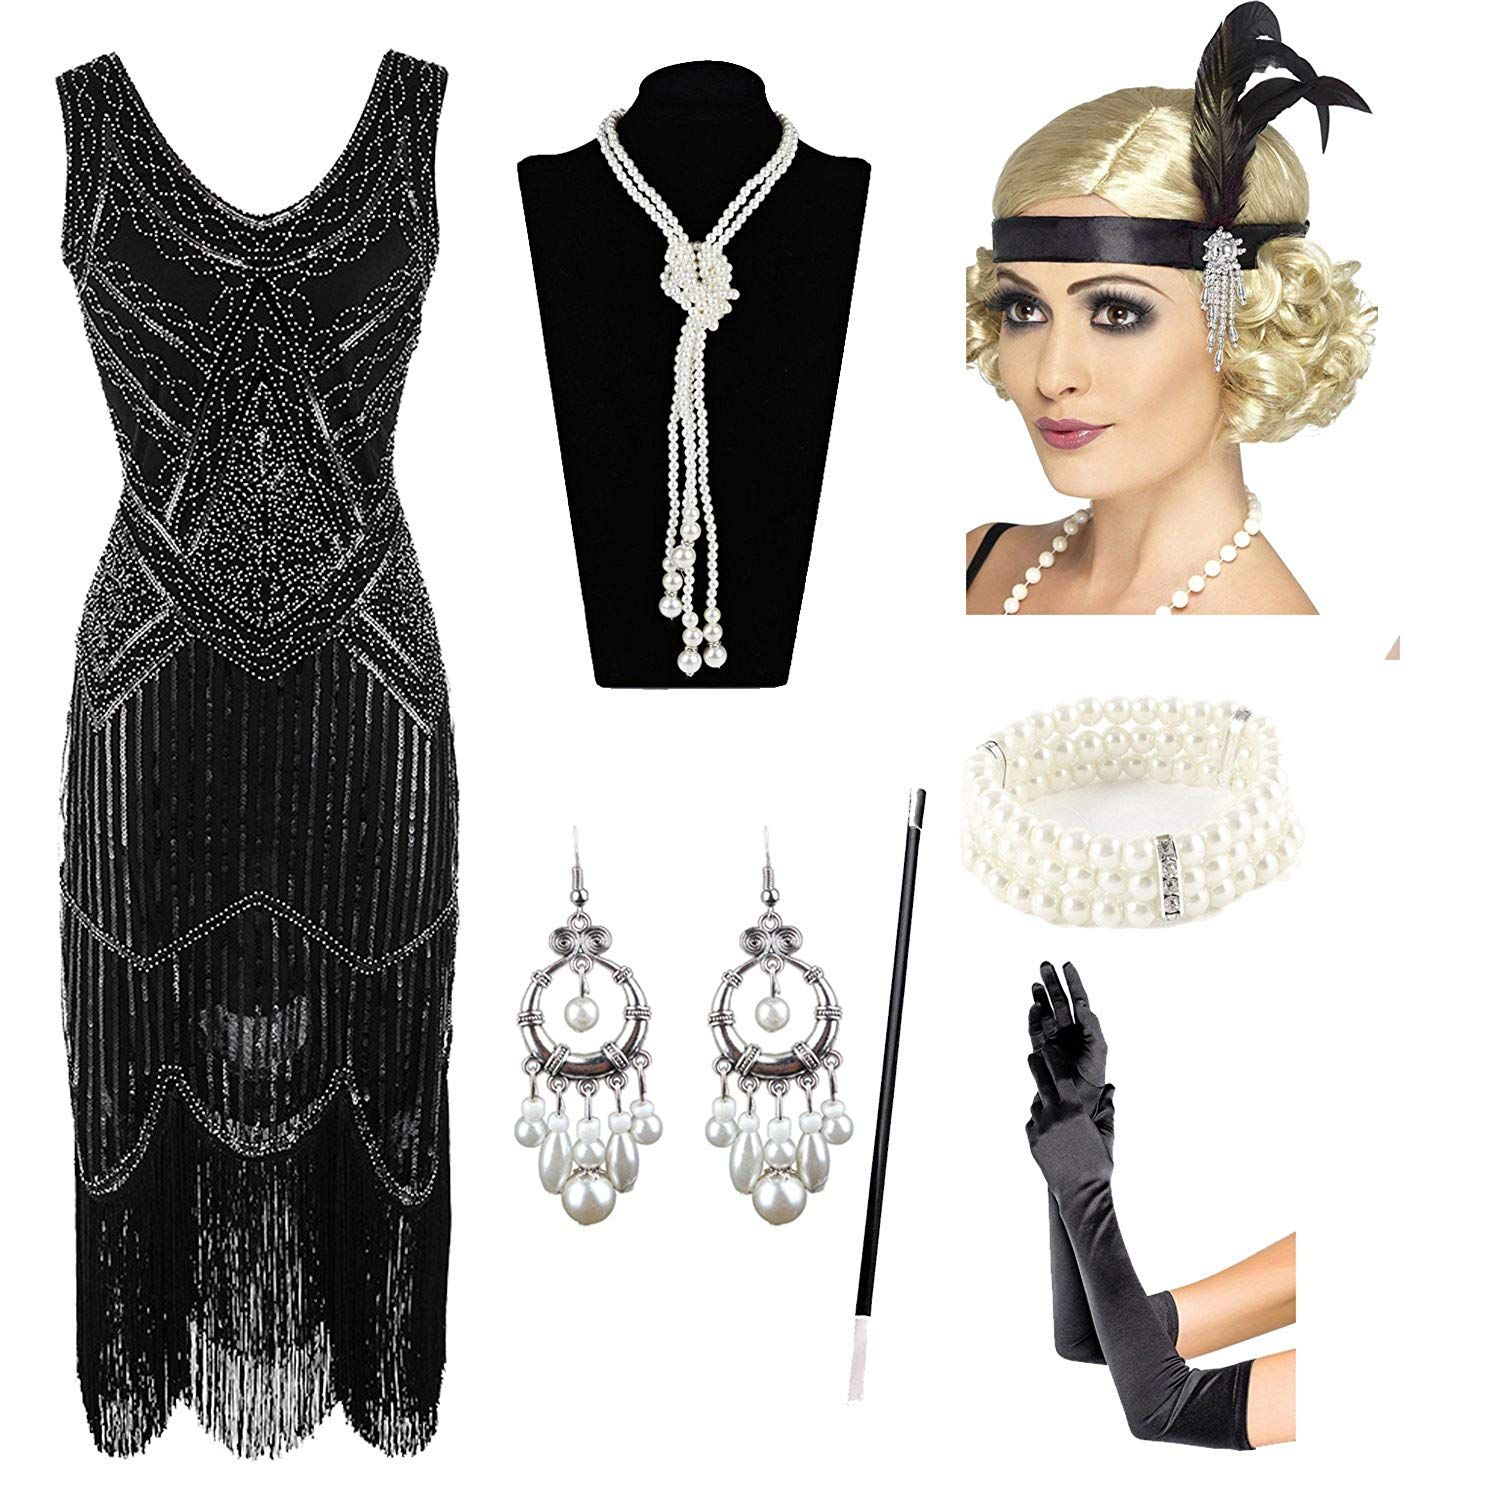 1920s Gatsby Sequin Fringed Paisley Flapper Dress With 20s Accessories Set At Amazon Women S Clothing Sto Flapper Dress Flapper Dress Gatsby Costumes For Women